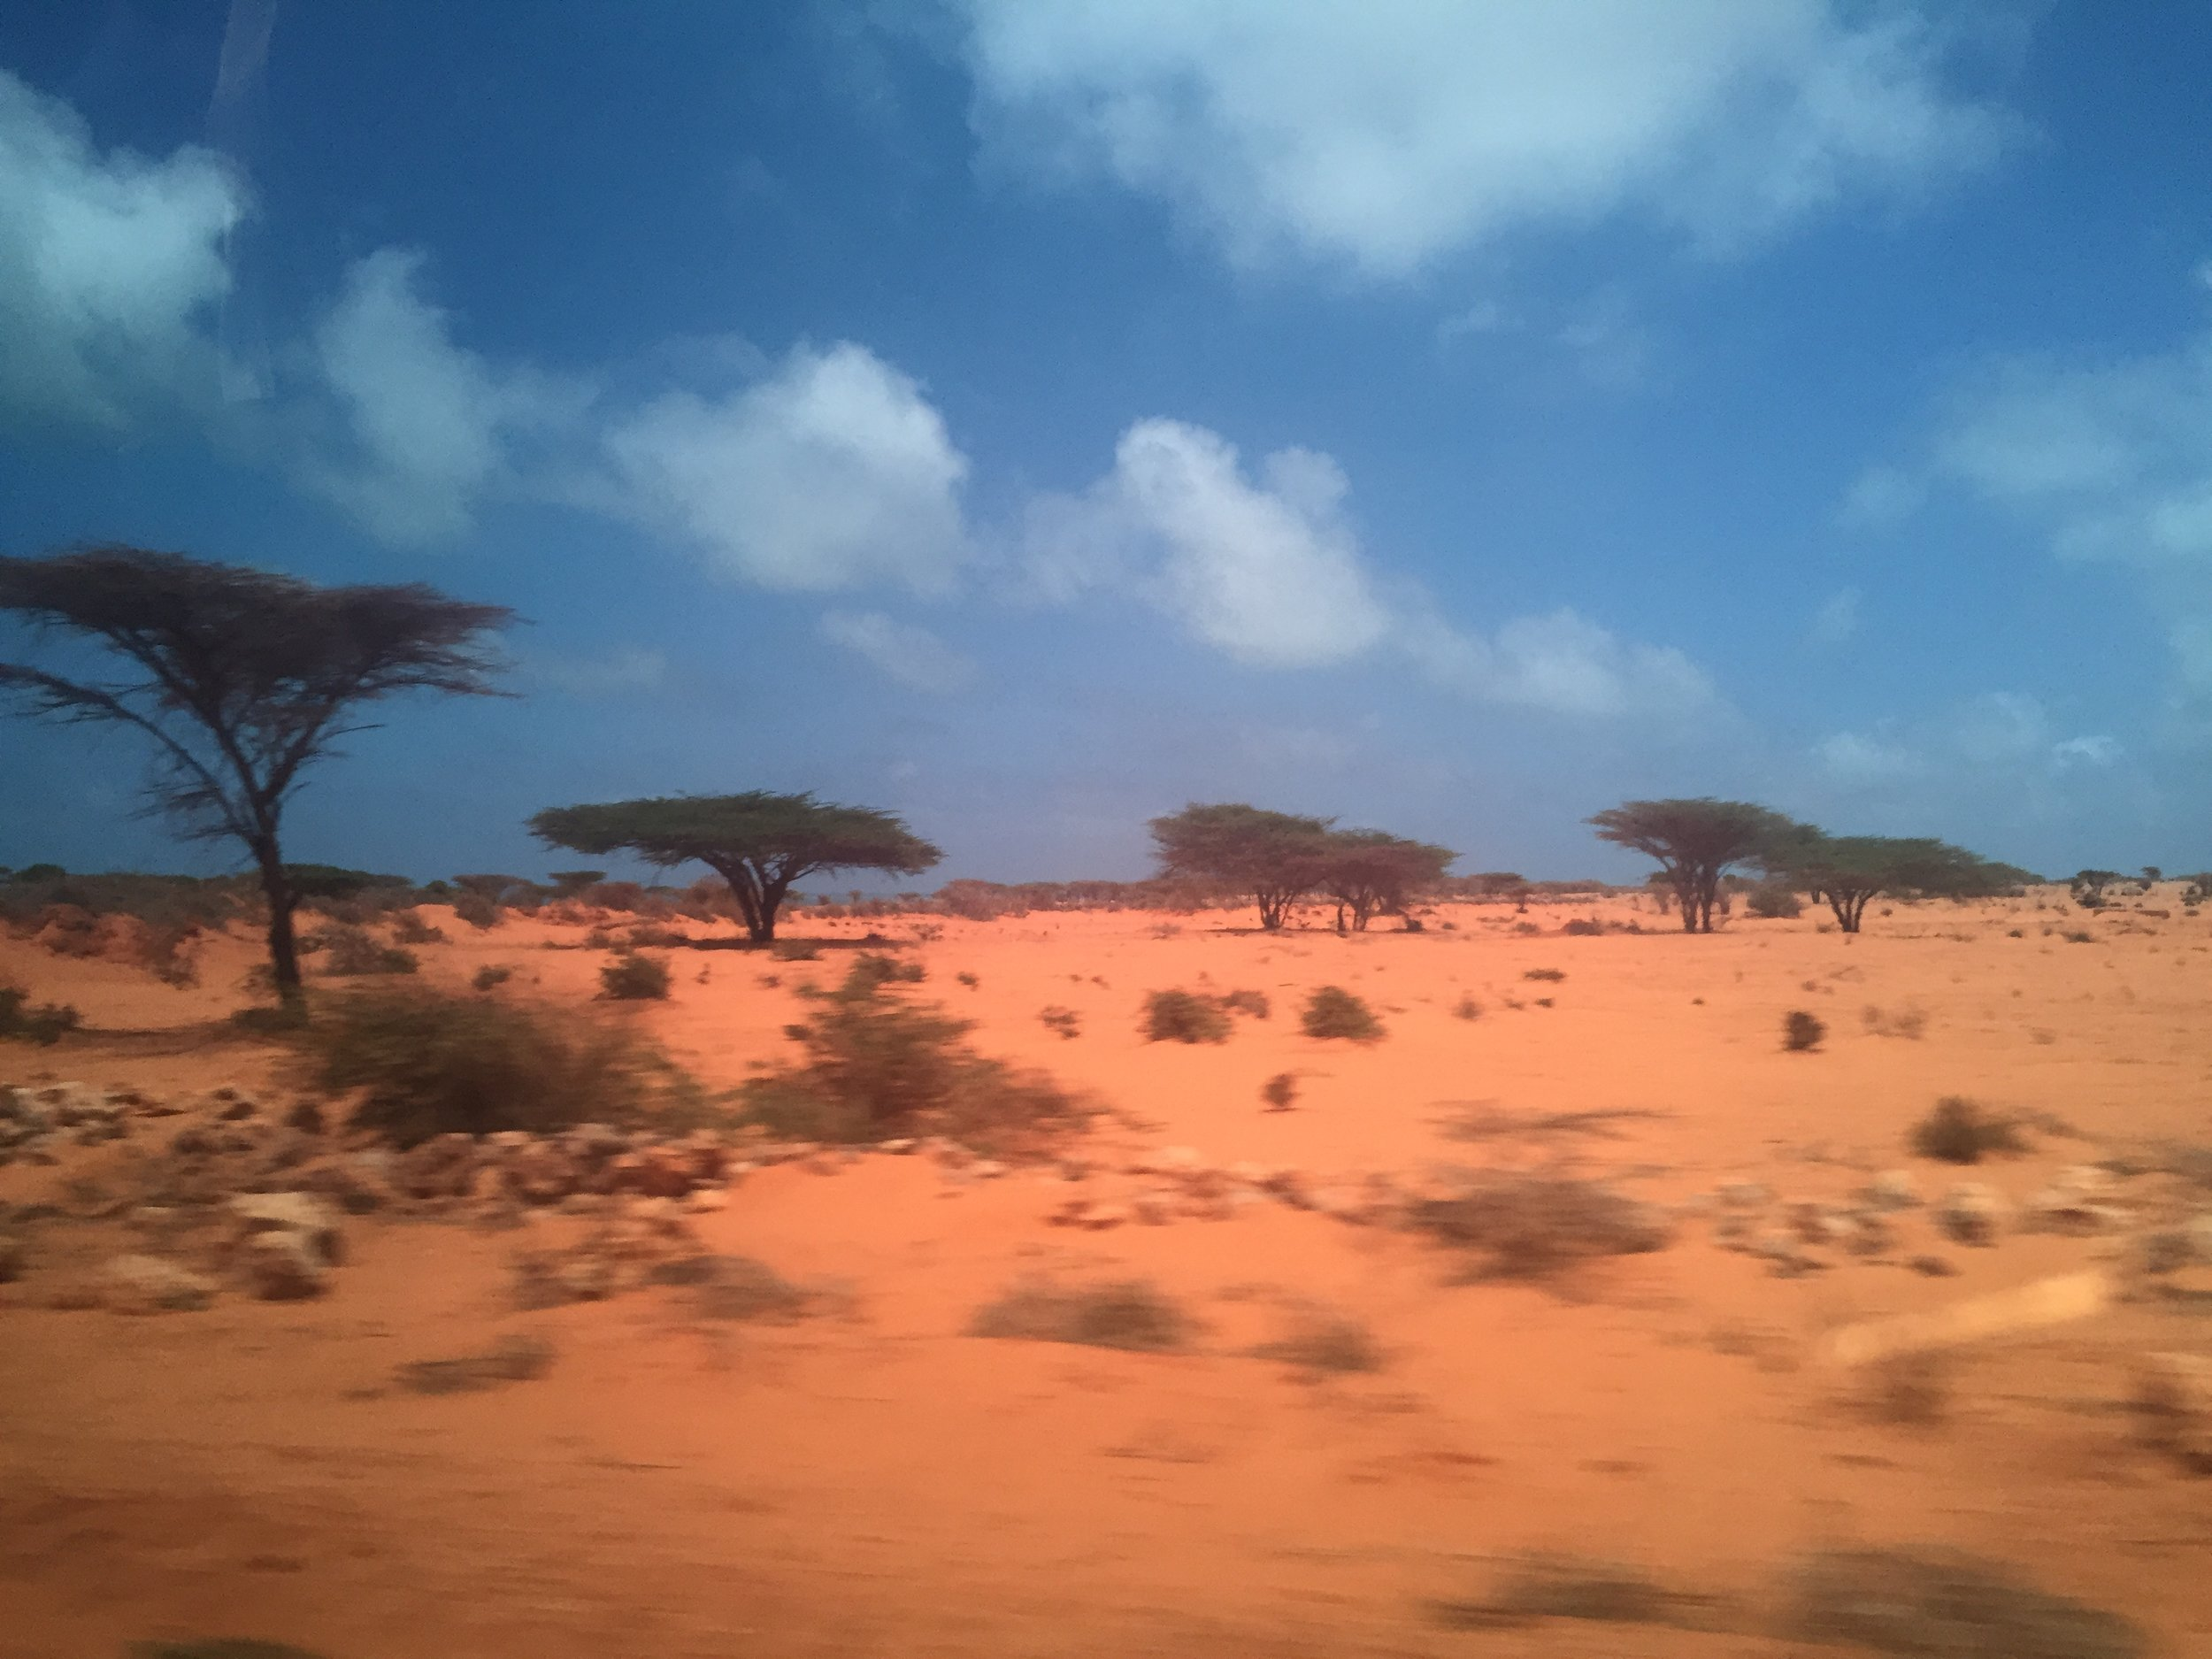 Landscape on the outskirts of Kismayo. The last harvest was well below average and with the potential poor rainfall due to La Nina, drought conditions are expected. The climate conditions in Somalia cause a challenge for former agro-pastoralists returning from Dadaab to re-establish to their previous livelihoods.